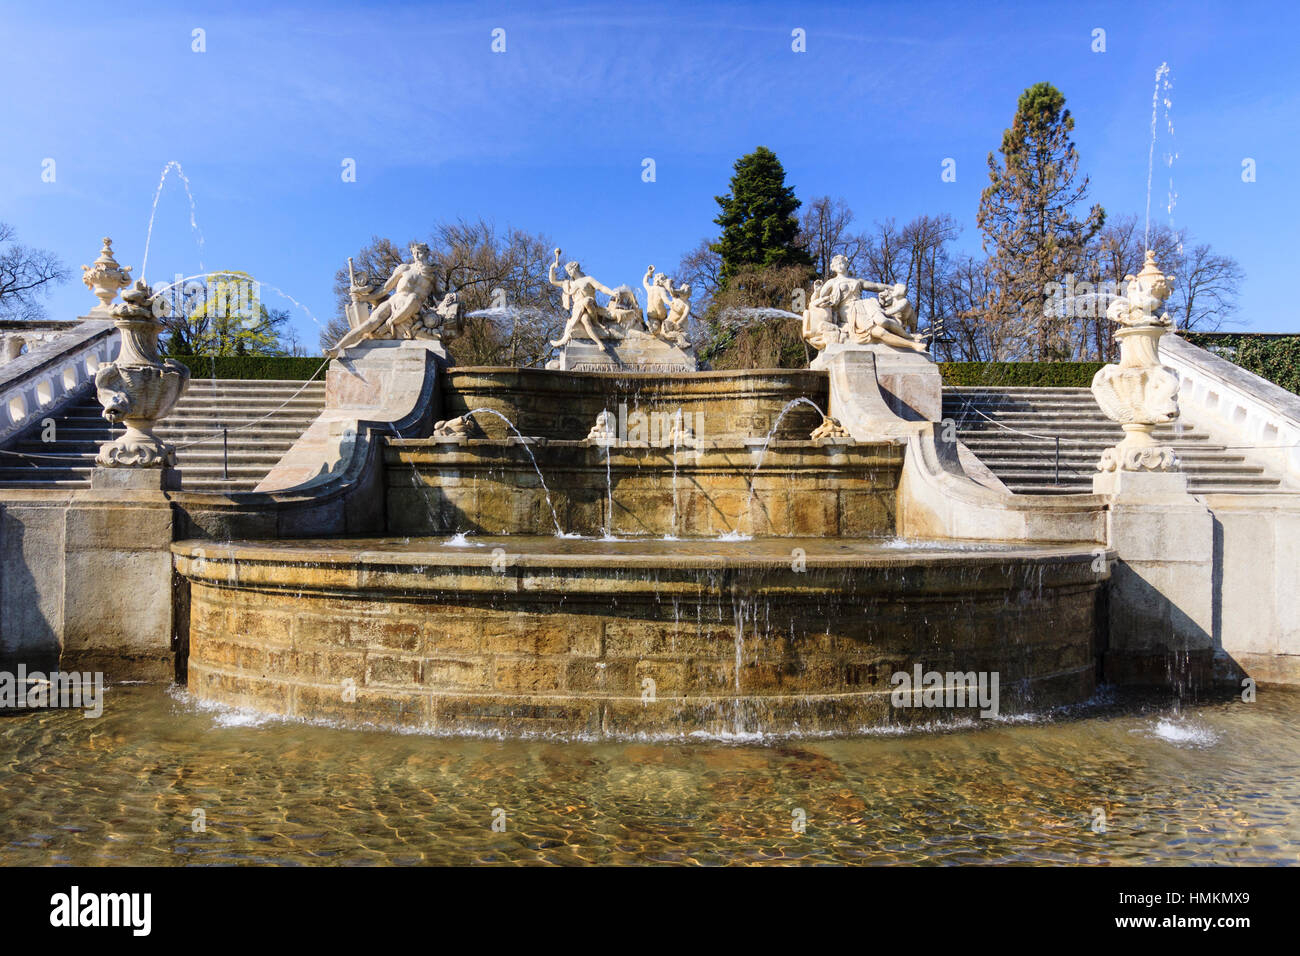 Monumental Baroque Cascade fountain in the gardens at the castle of Cesky Krumlov, Bohemia,  Czech Republic - Stock Image